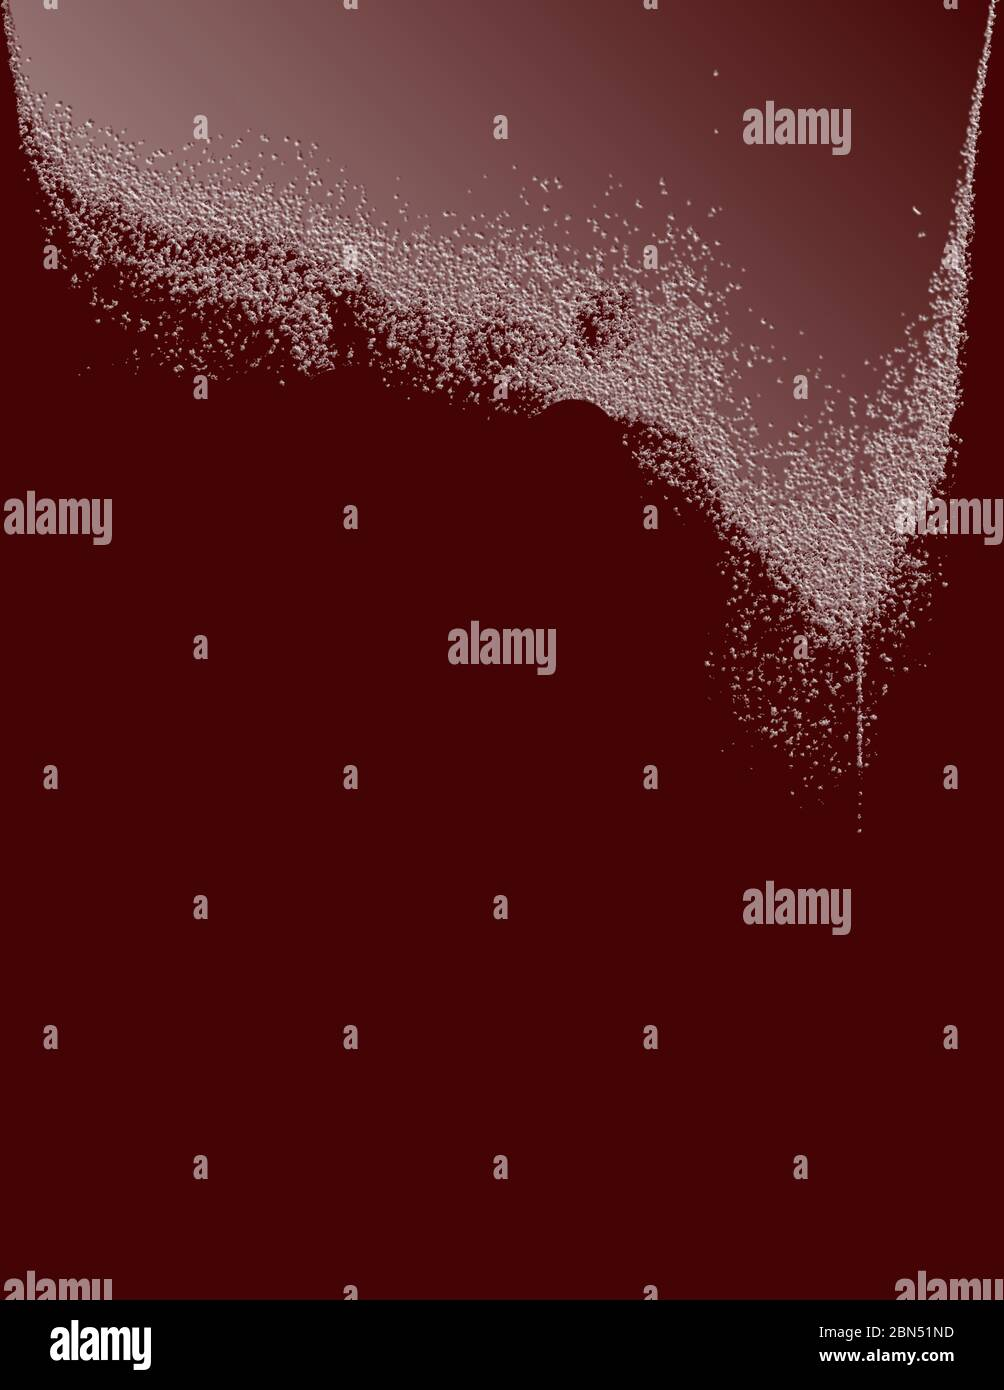 Evocative And Moody Dark Red Abstract Background Room For Text